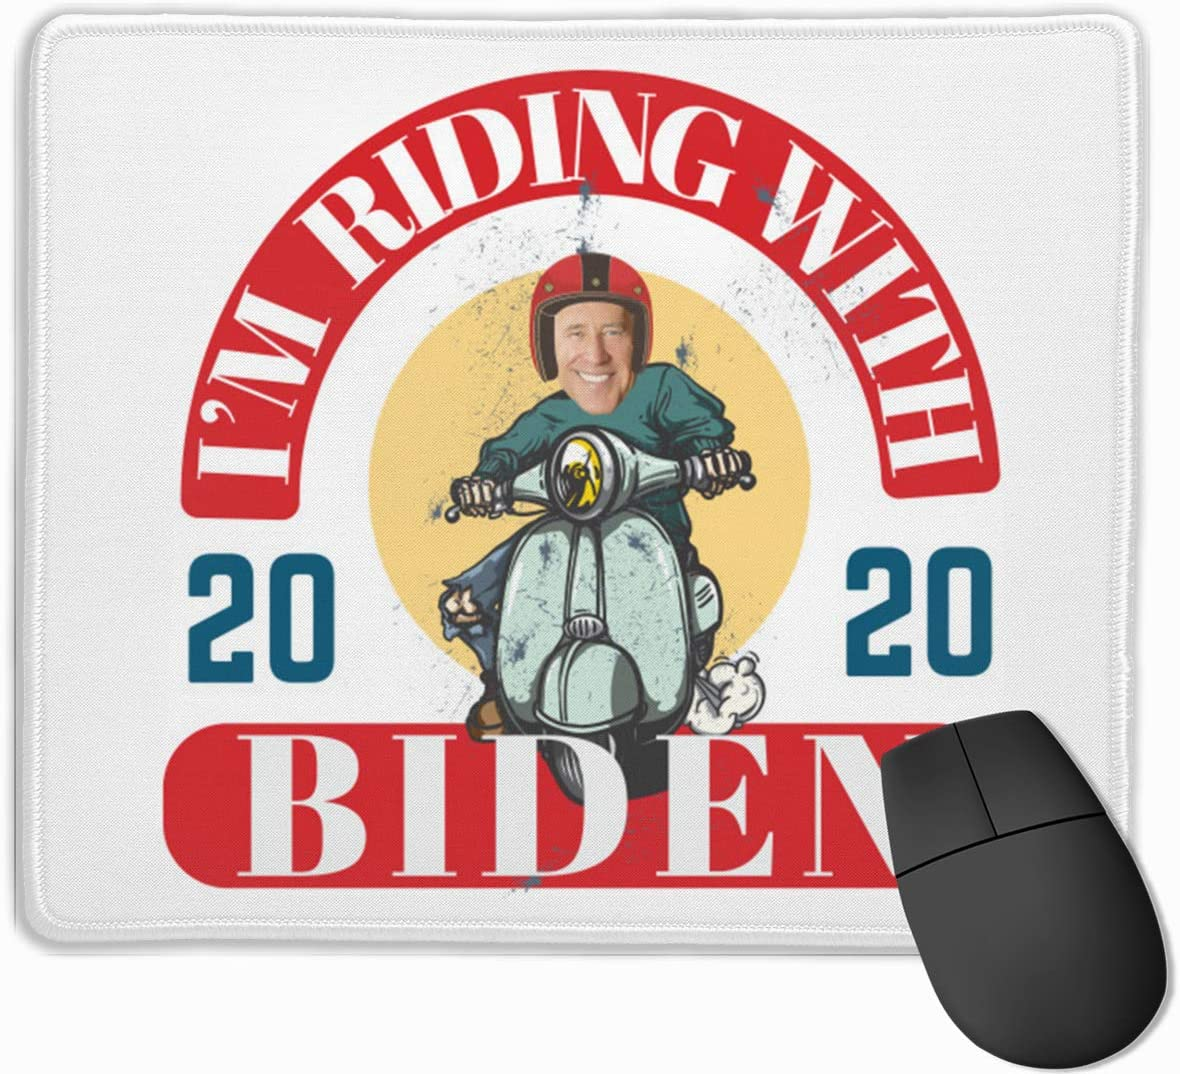 Joe Biden Campaign Rubber Mousepad Gaming Mouse Pad with Stitched Edge 11.8x9.8